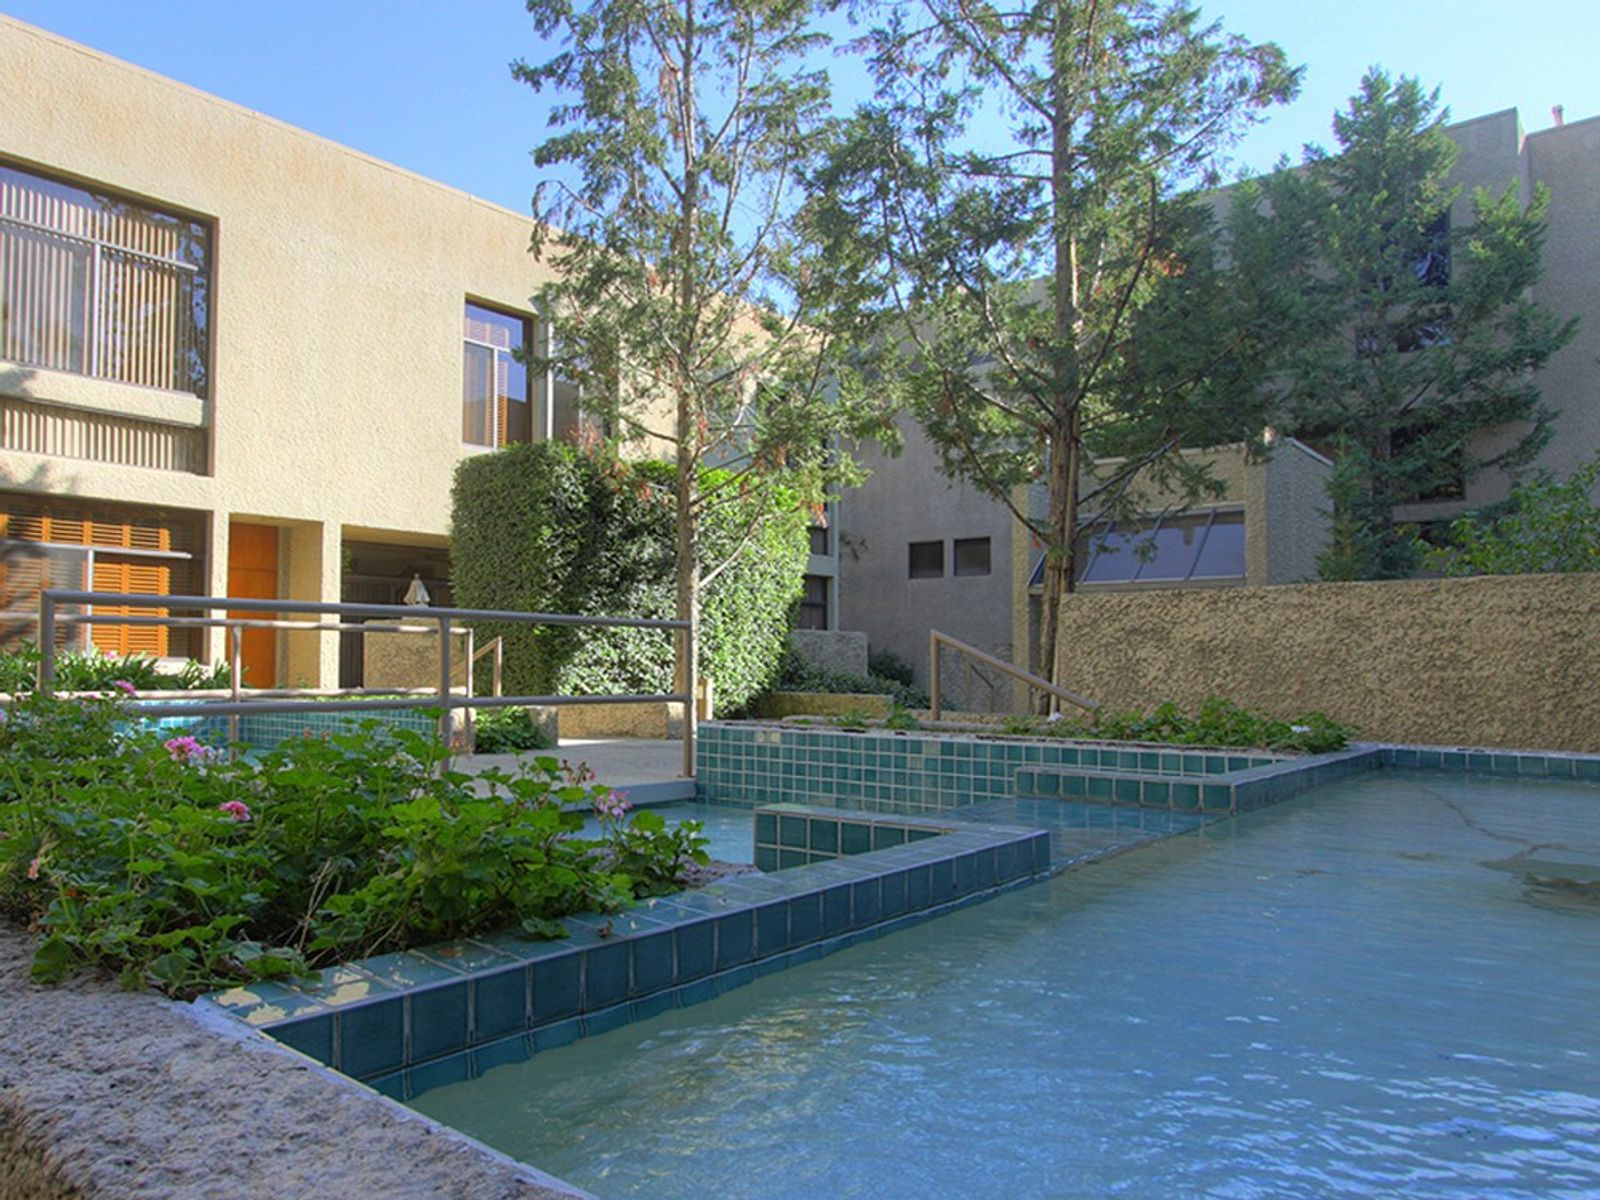 Architecturally Designed Condominium, Pasadena CA Condominium - Pasadena Real Estate